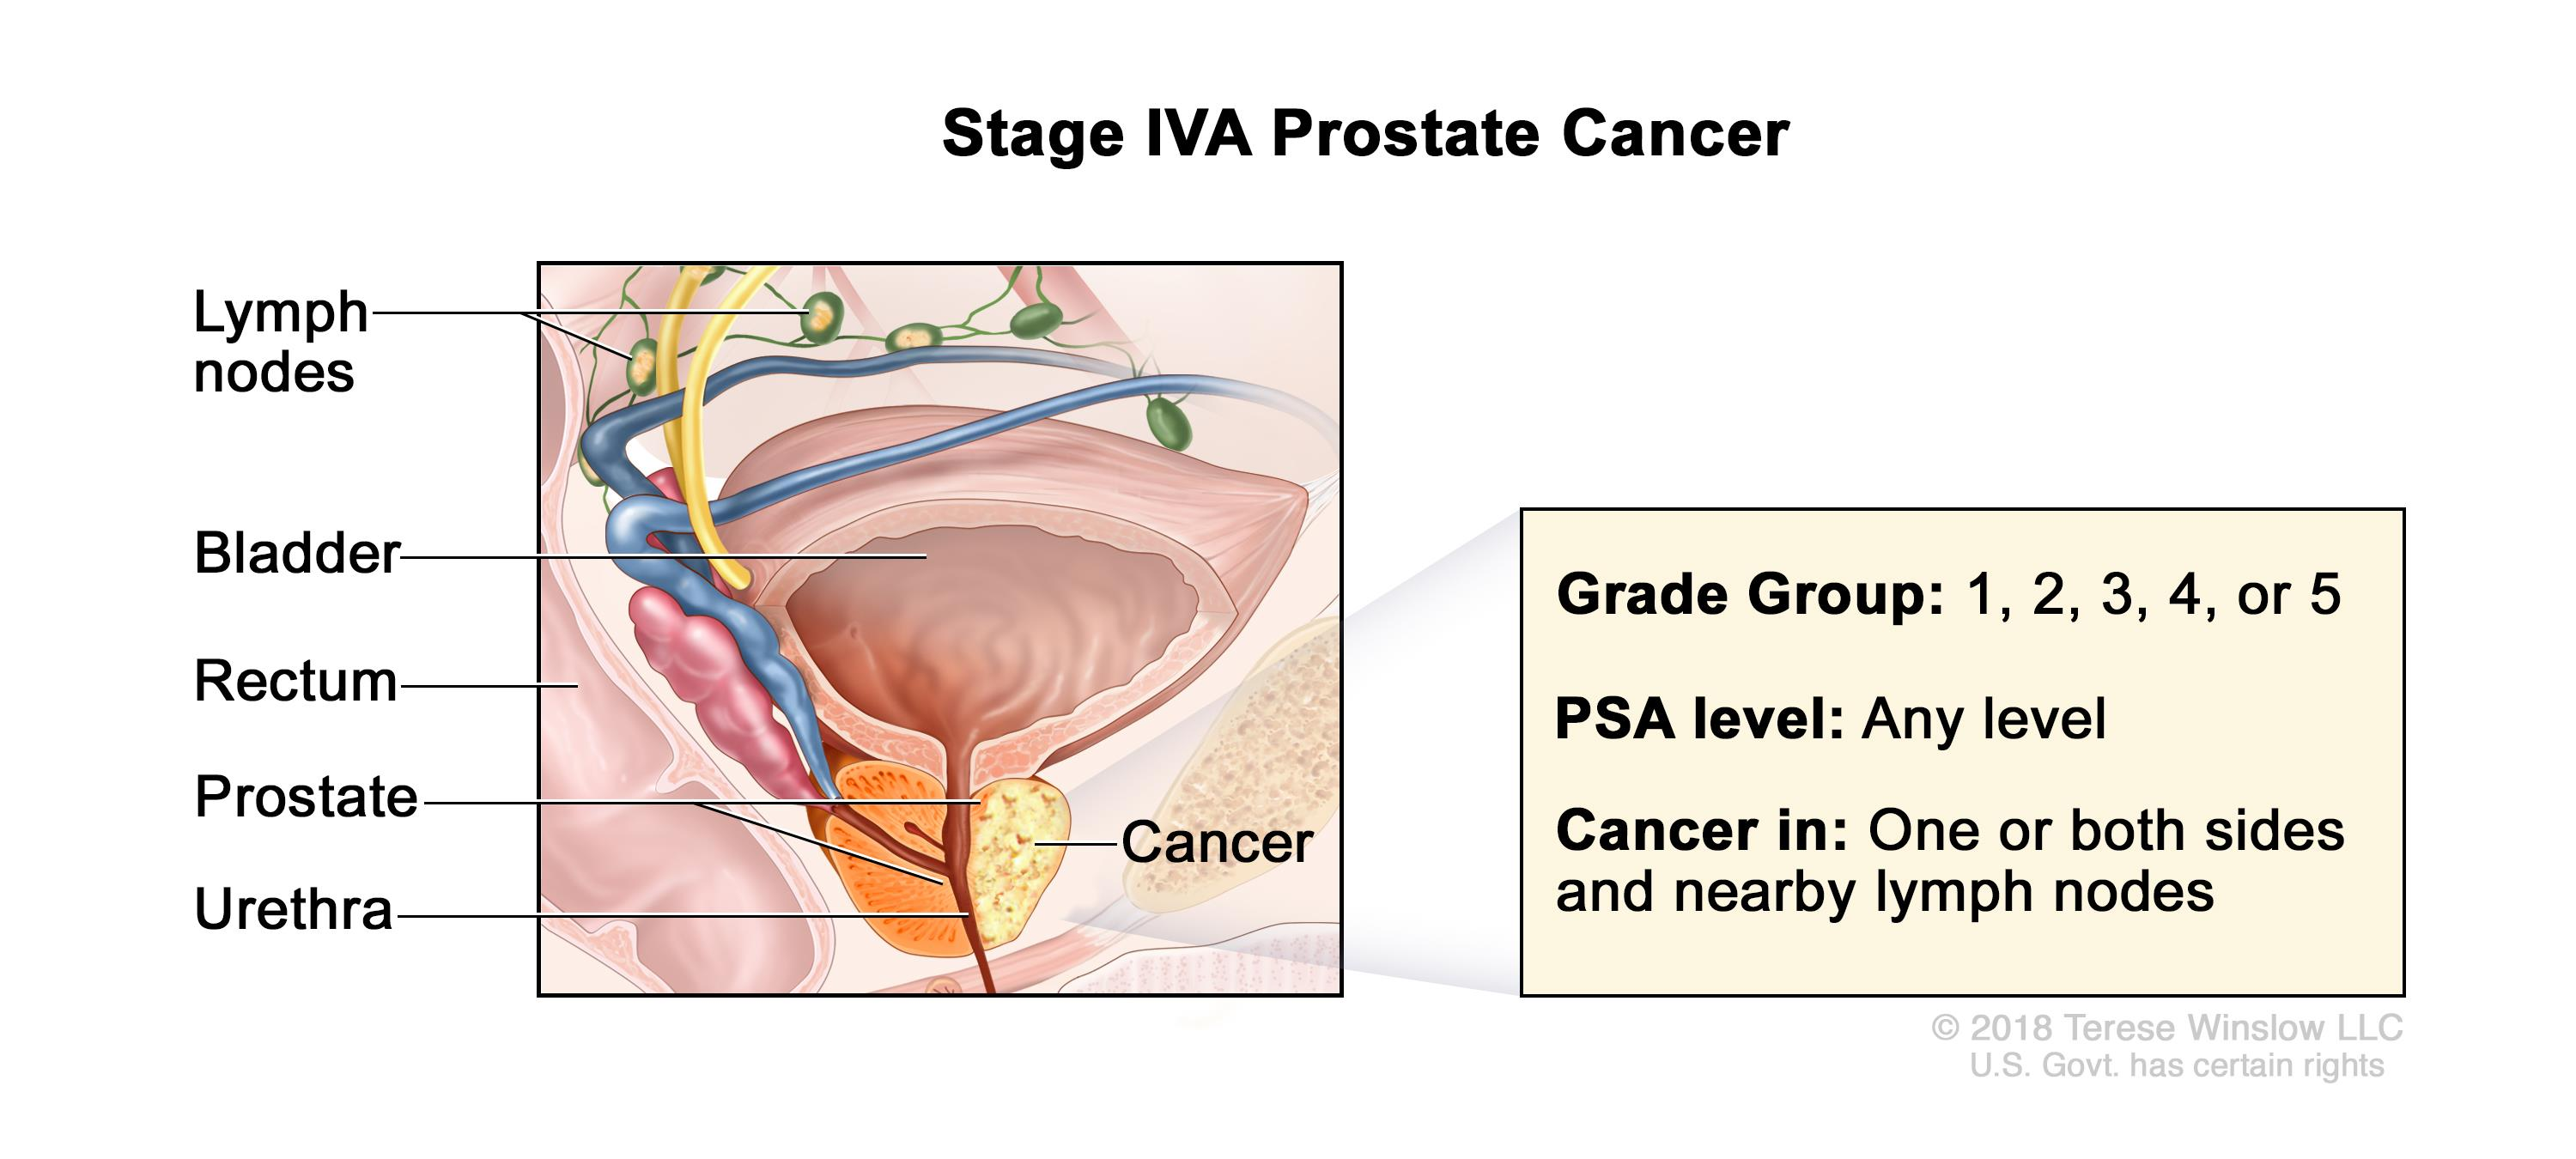 Prostate Cancer Treatment Pdq Patients Oncolink